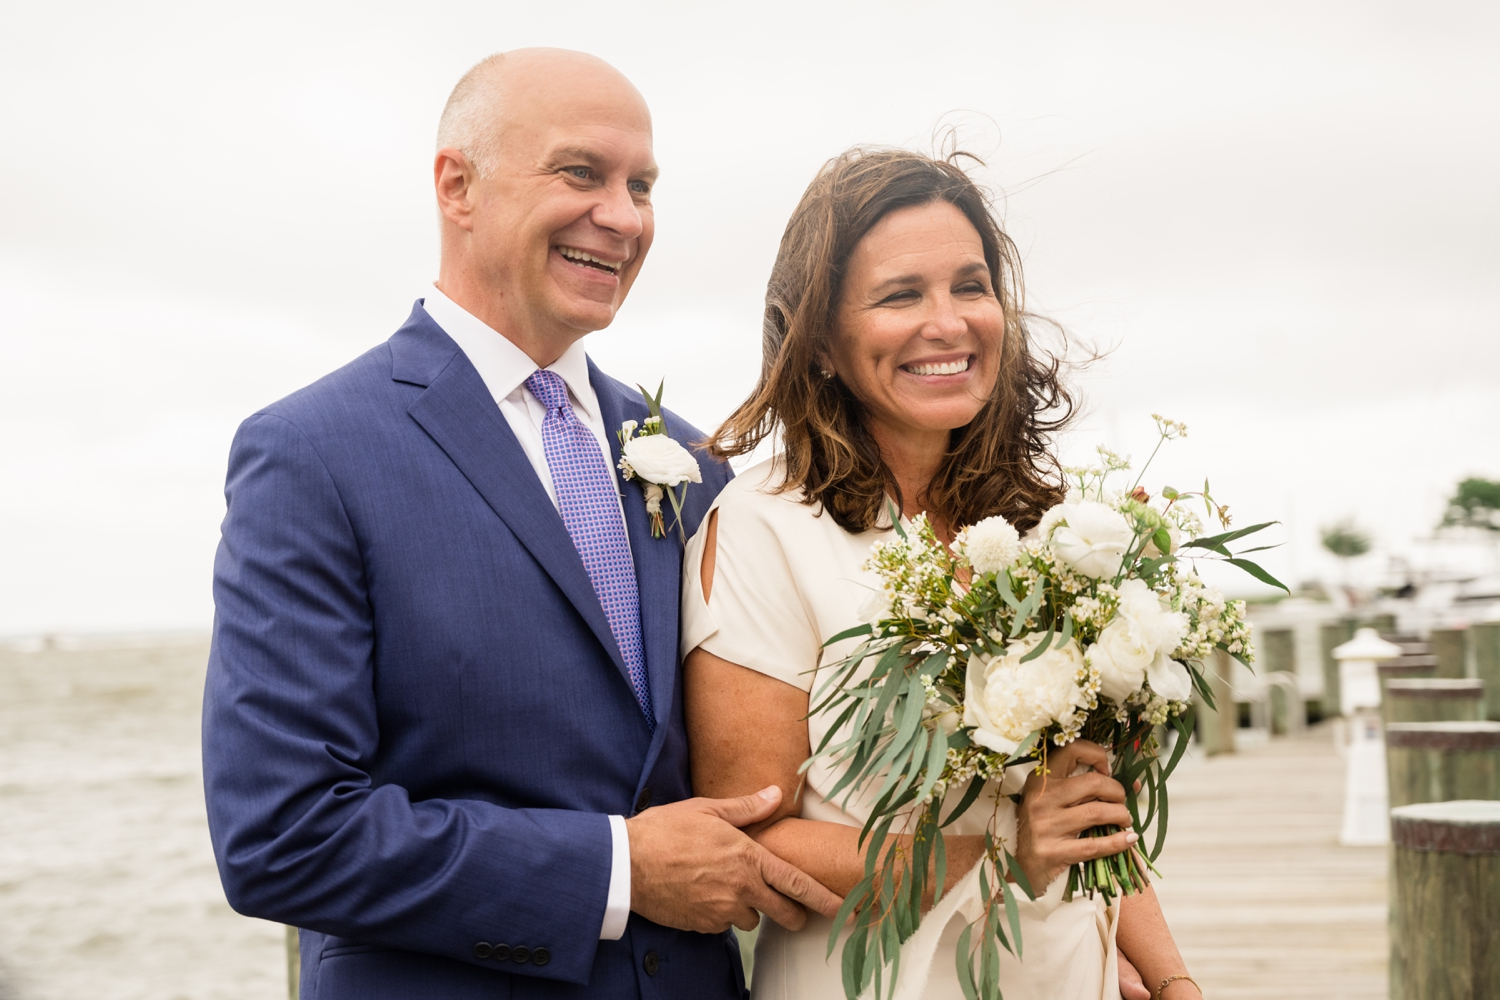 Chesapeake Bay micro wedding outdoor ceremony on the Severn River